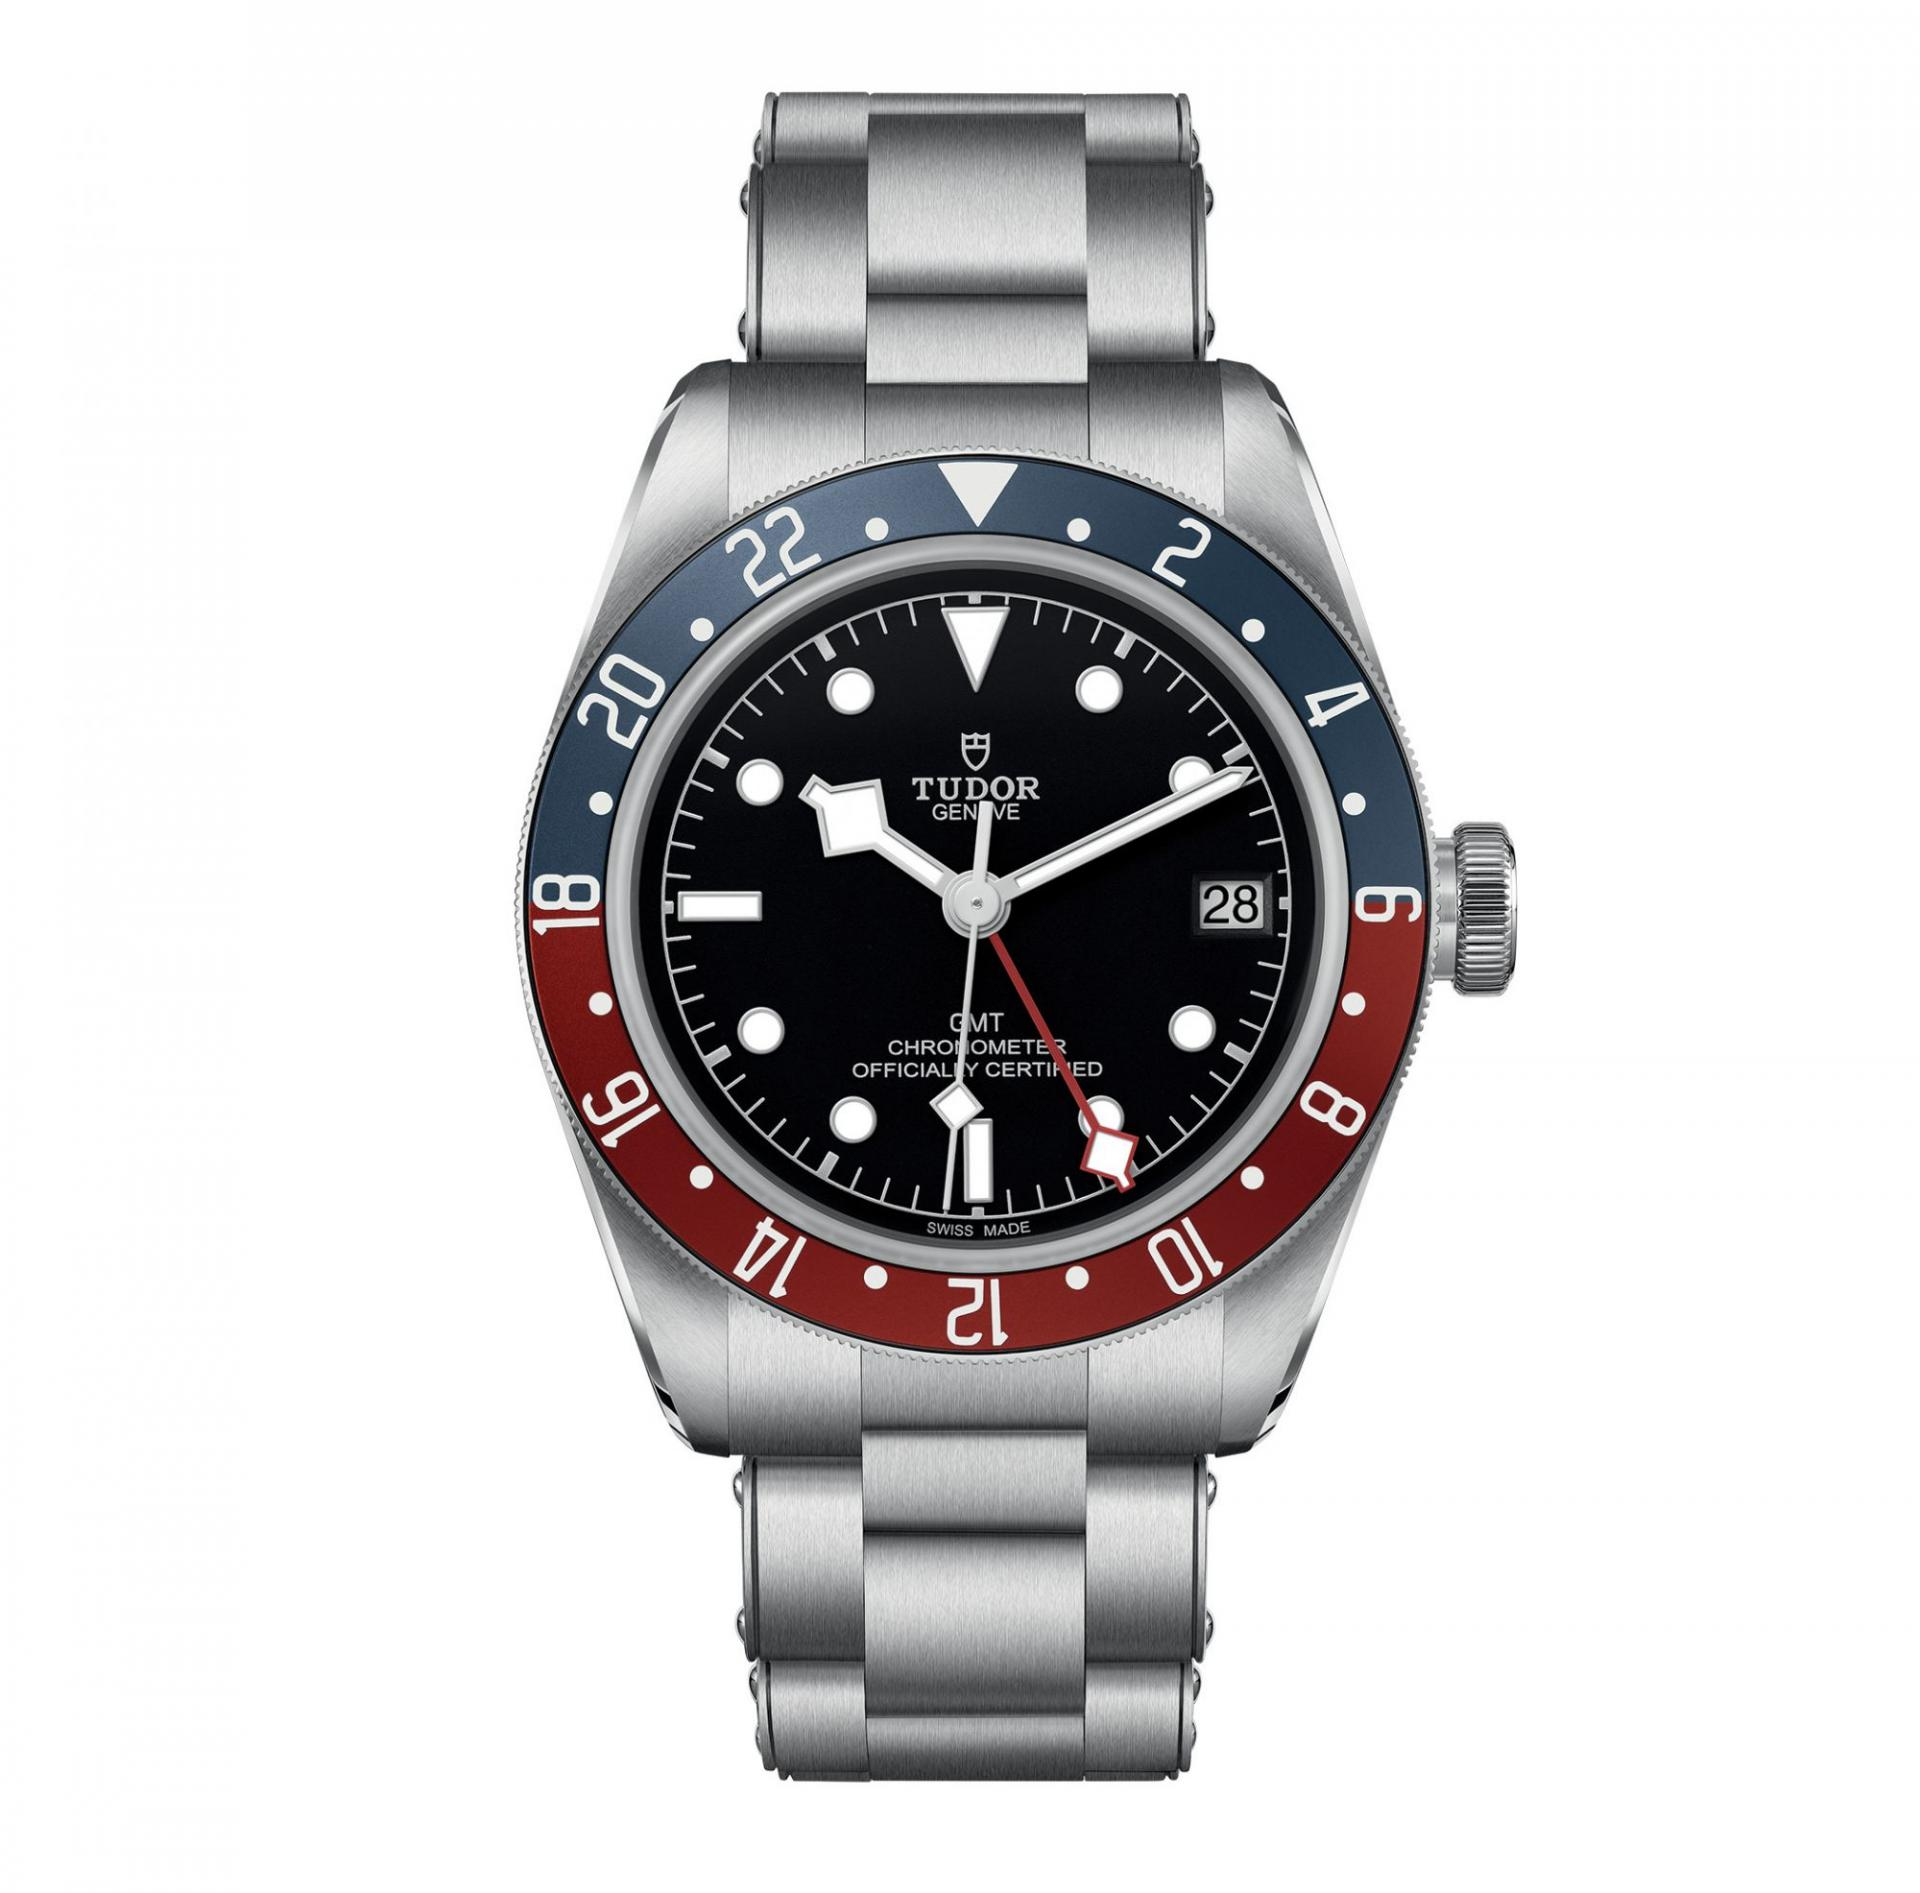 Black Bay GMT, Tudor, £2790